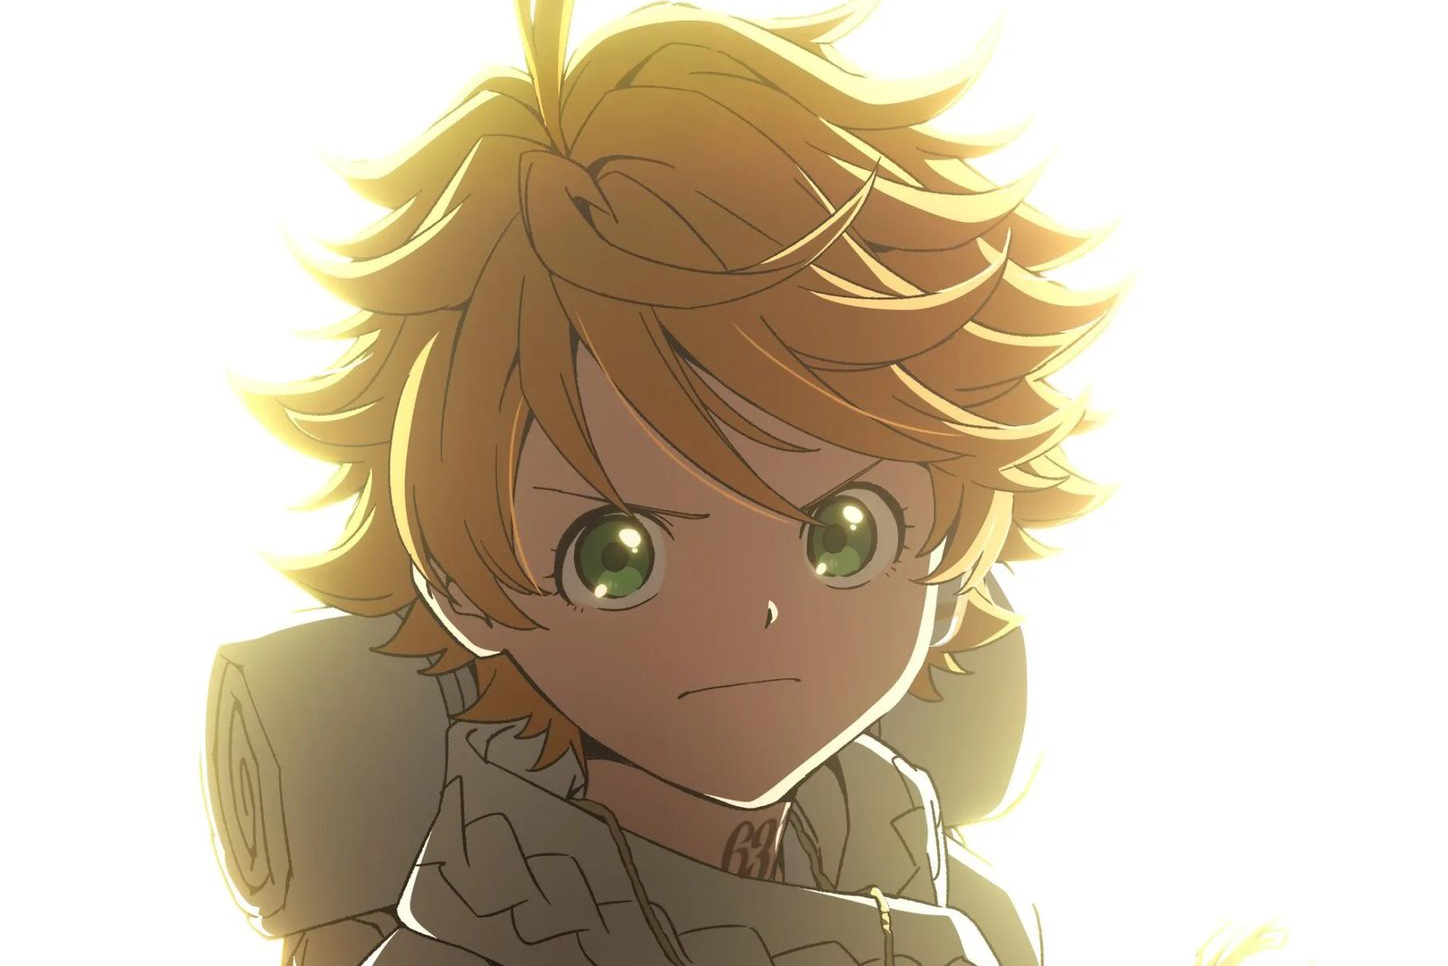 Most Anticipated Anime Coming Out in January 2021 - The Promised Neverland Season 2